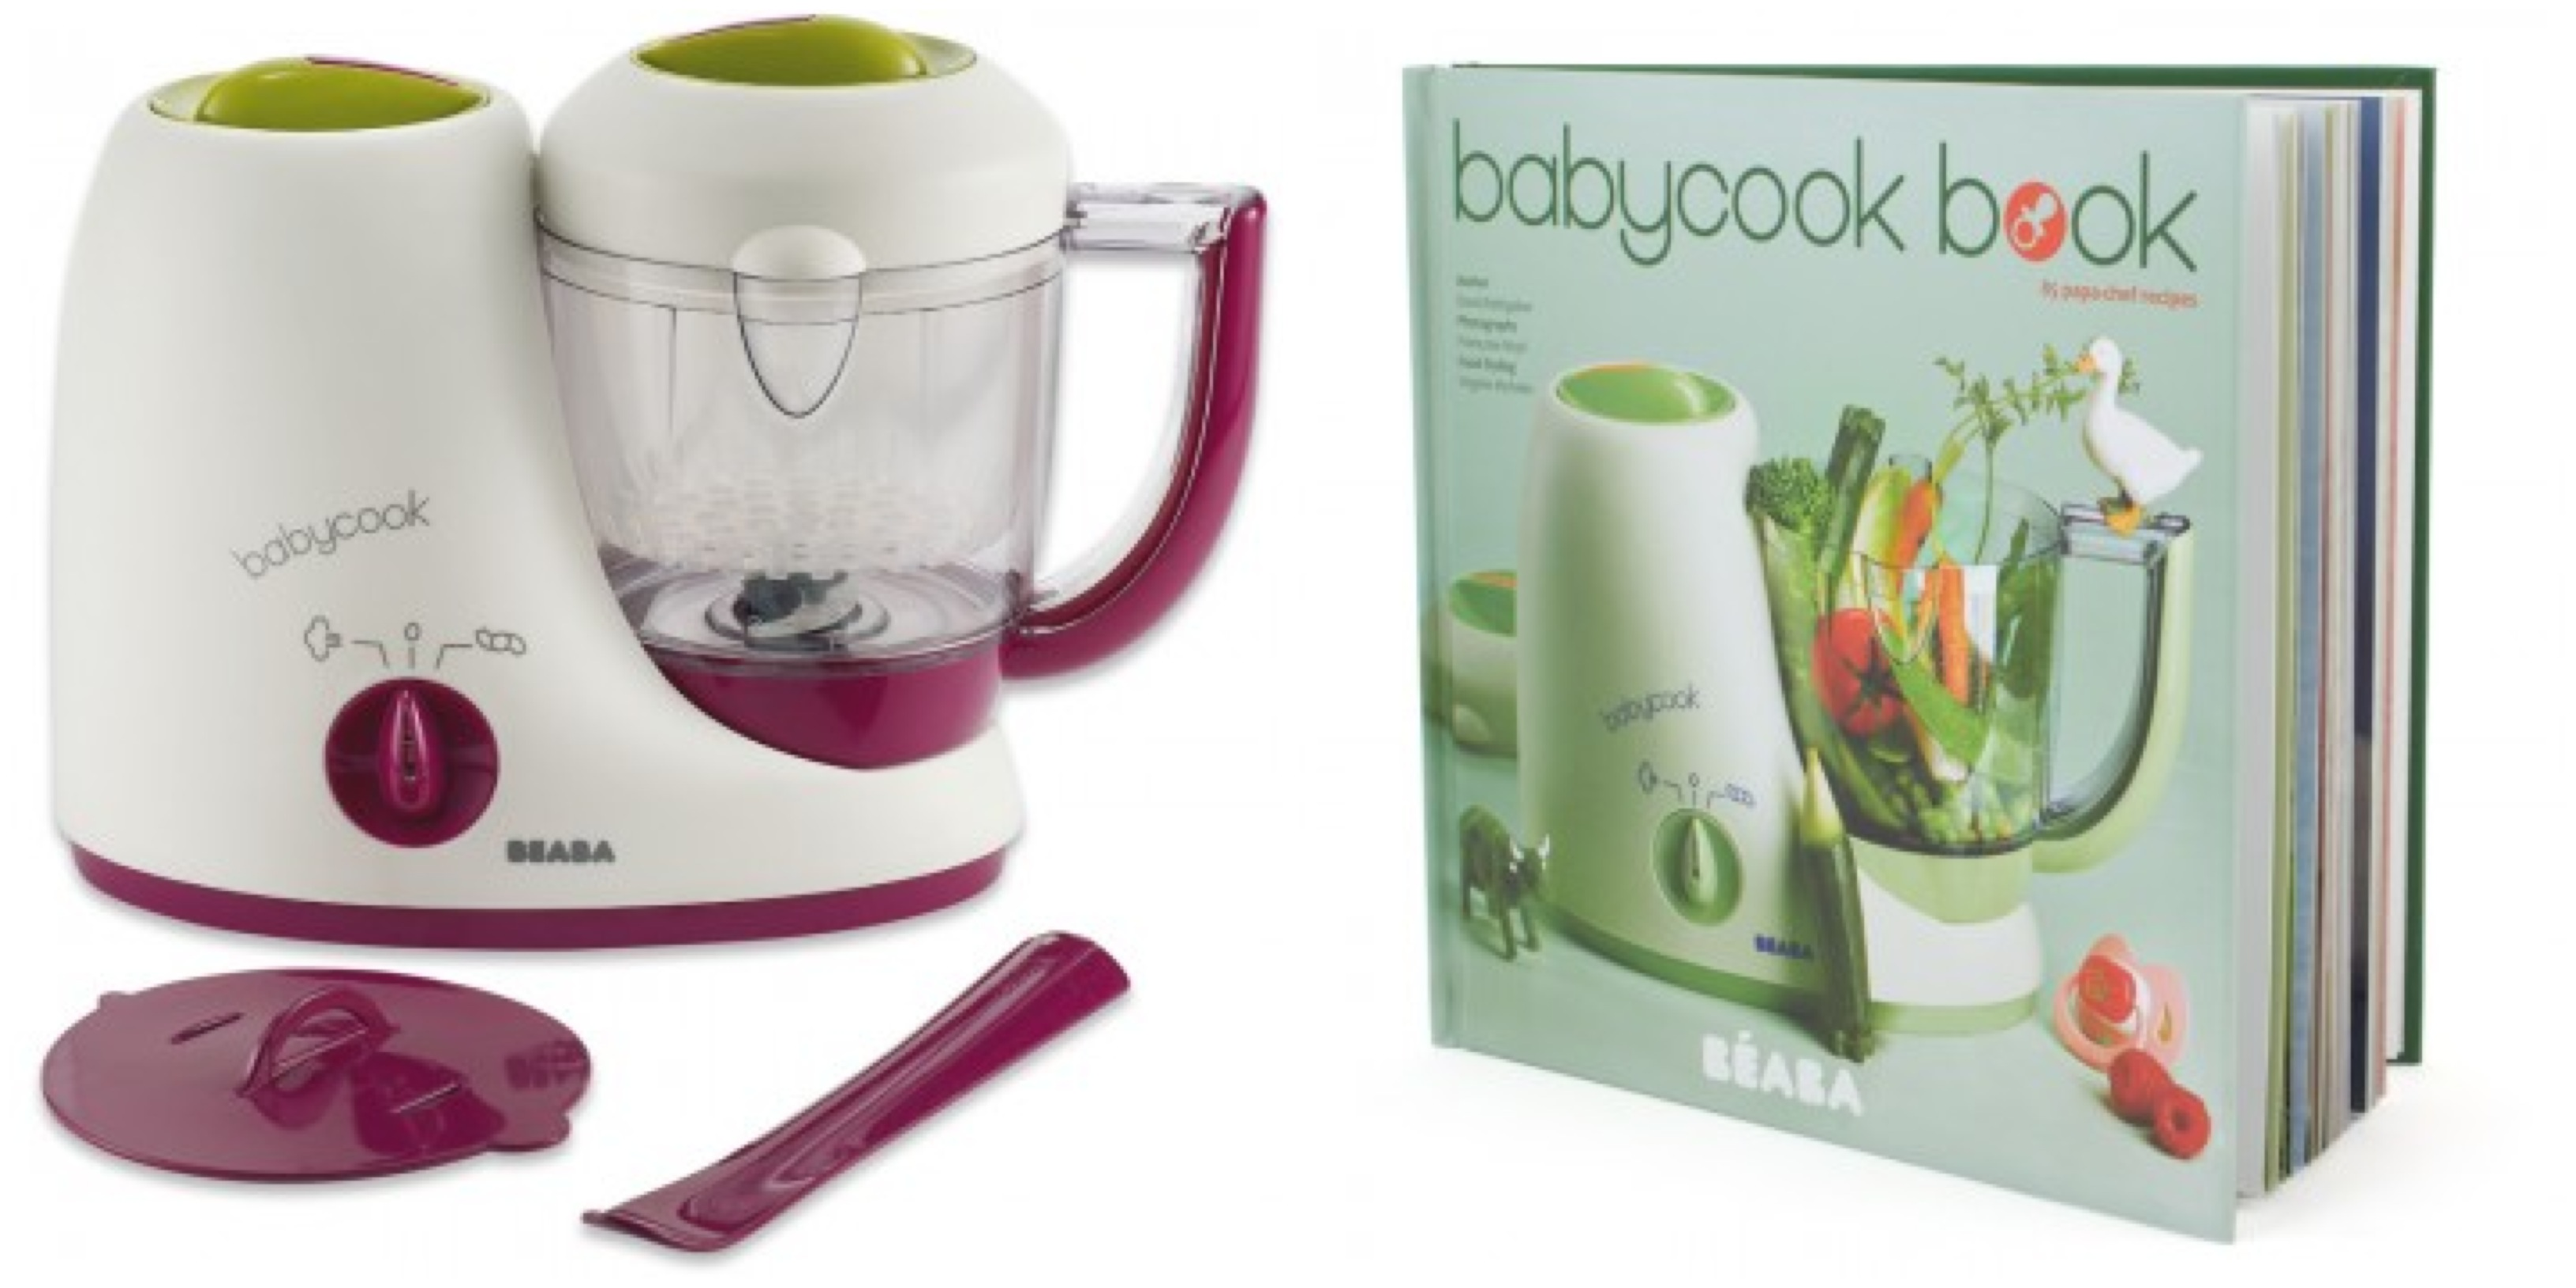 Our favourite recipes from the beaba babycook book image forumfinder Gallery